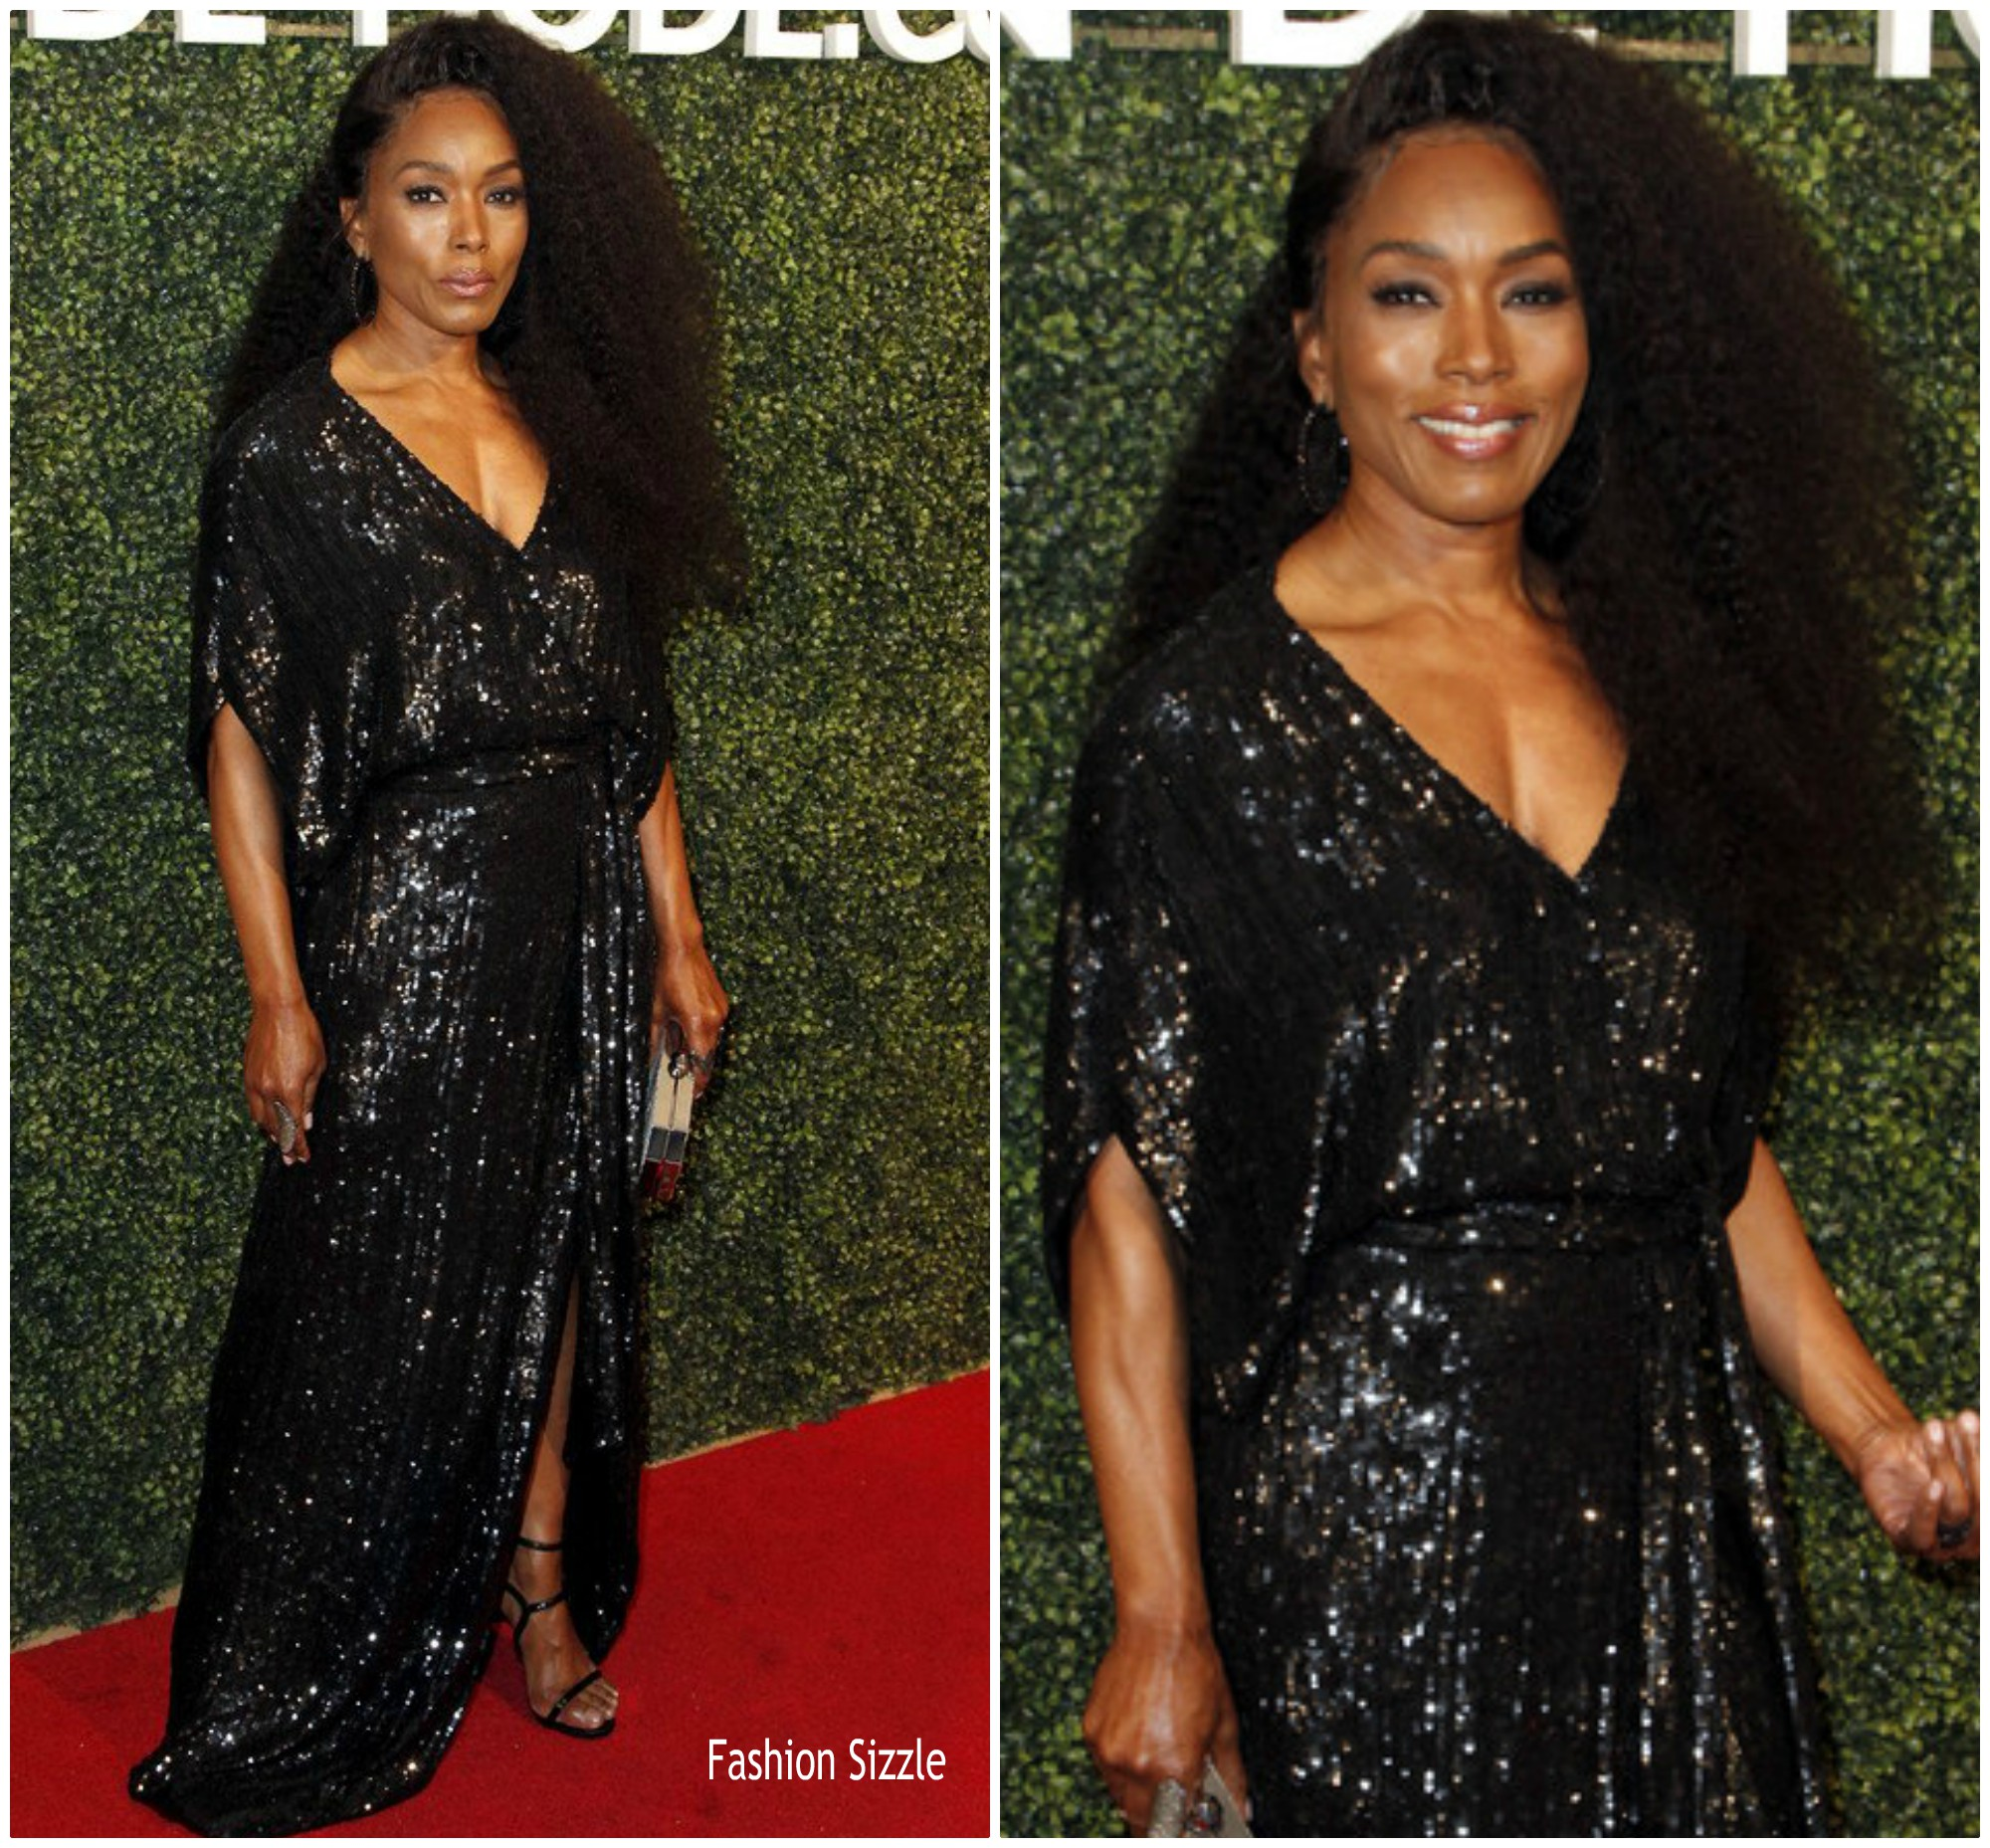 angela-bassett-in-diane-von-furstenberg-maison-de-mode-celebrates-sustainable-style-honors-suzy-amis-cameron